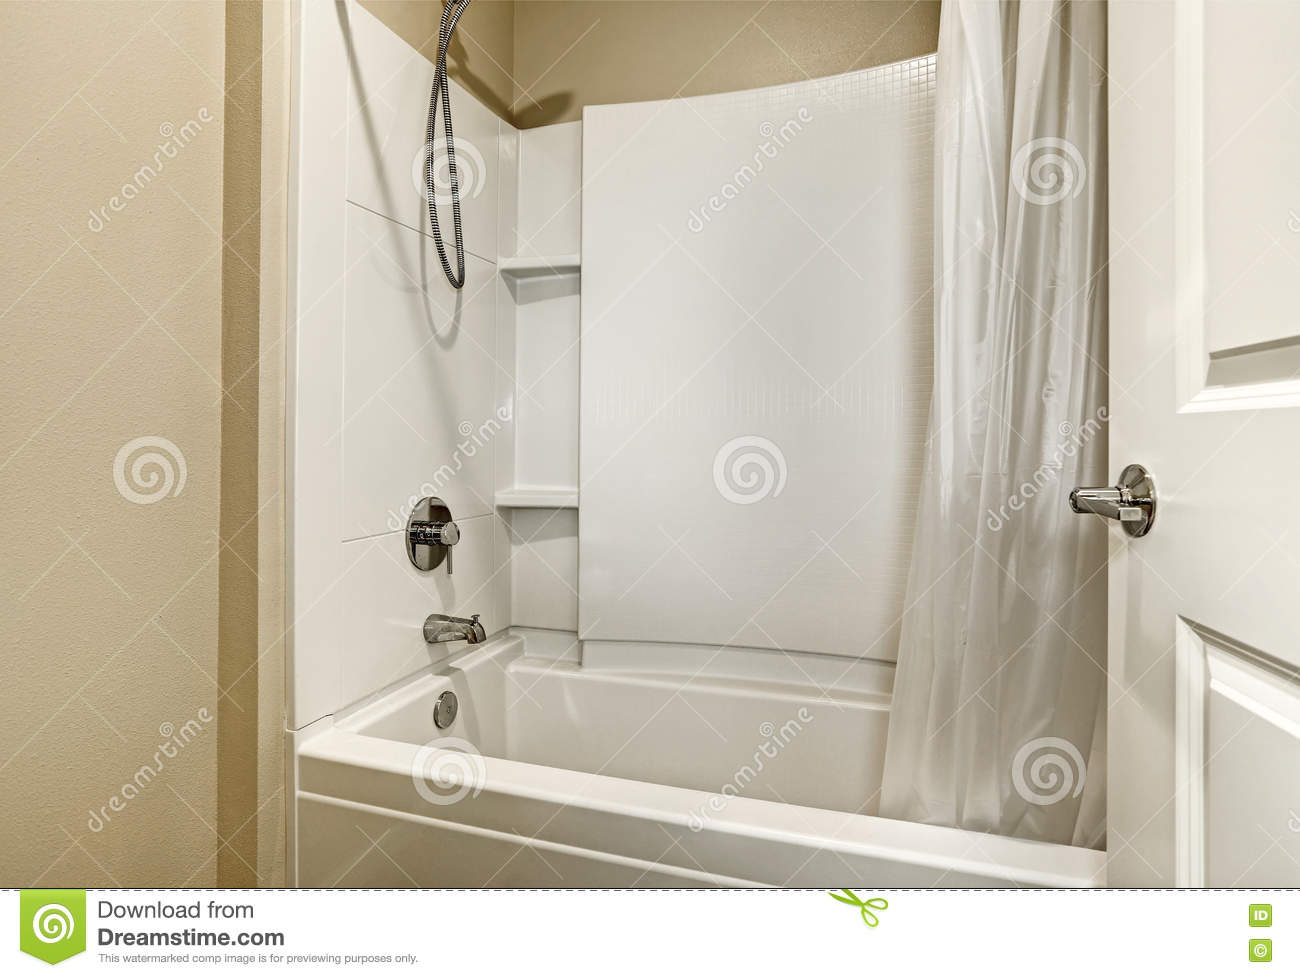 White Tub And Shower Combination Design Stock Image - Image of ...